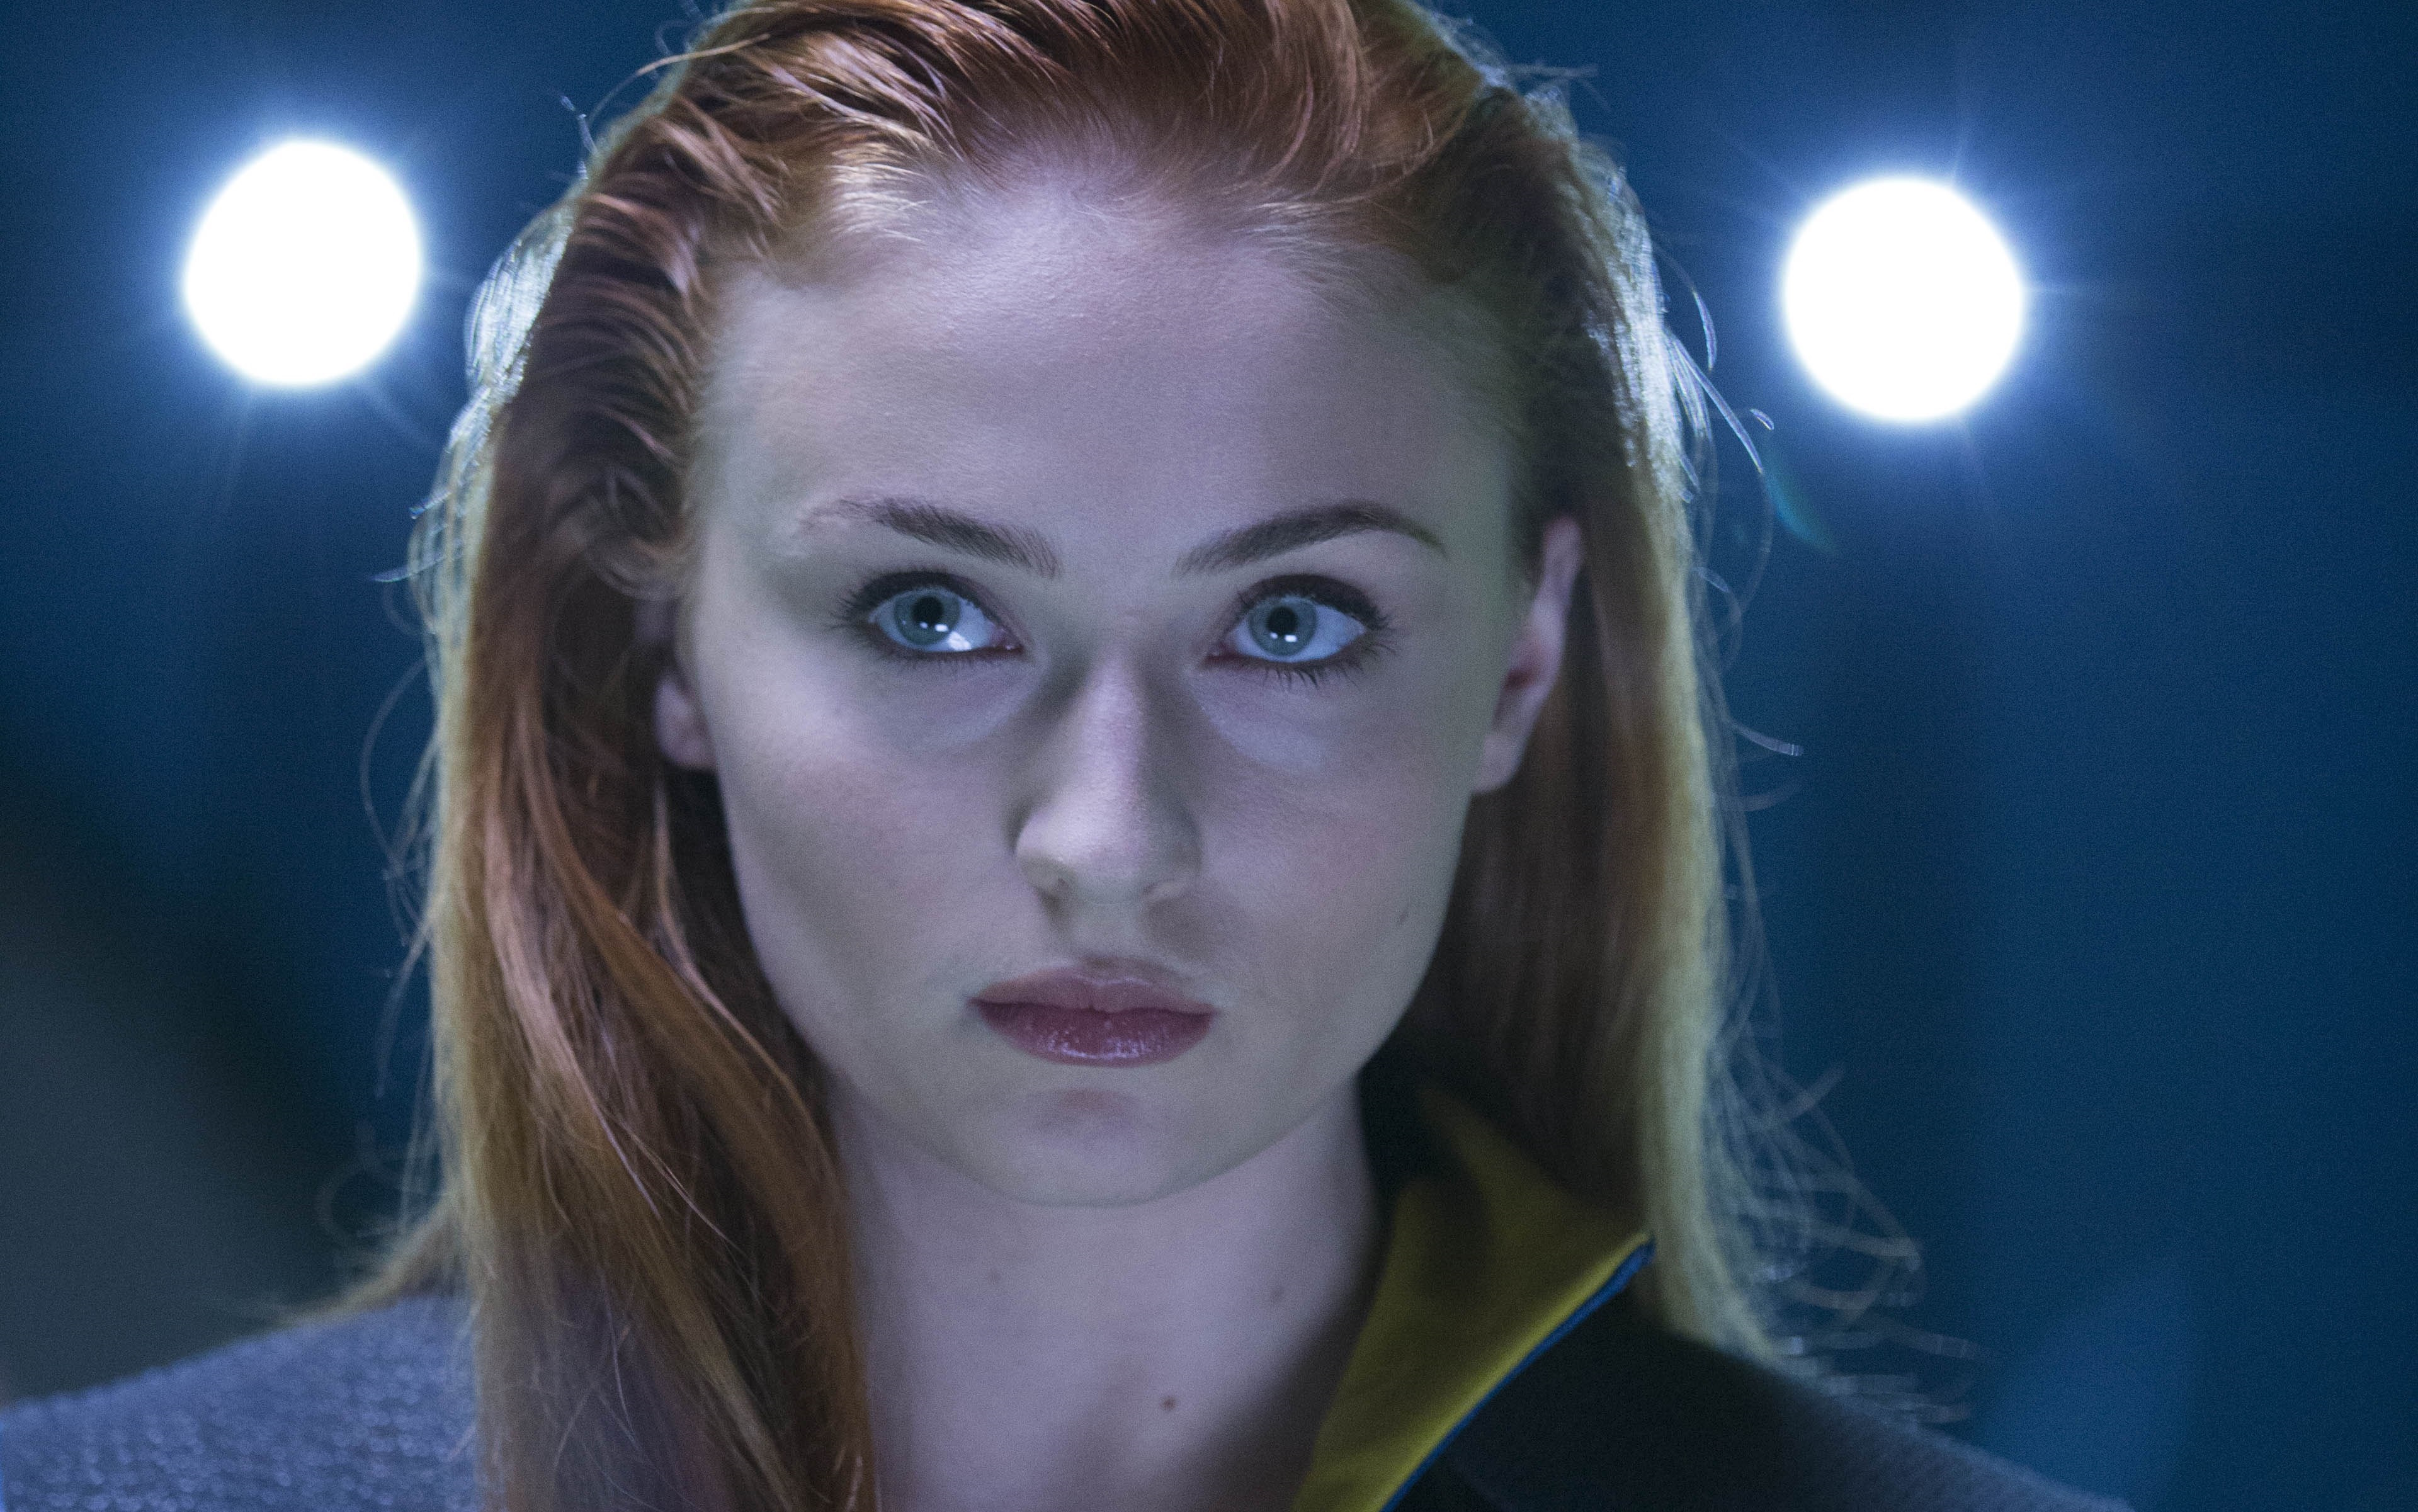 Sophie Turner in 'X-Men Apocalypse'